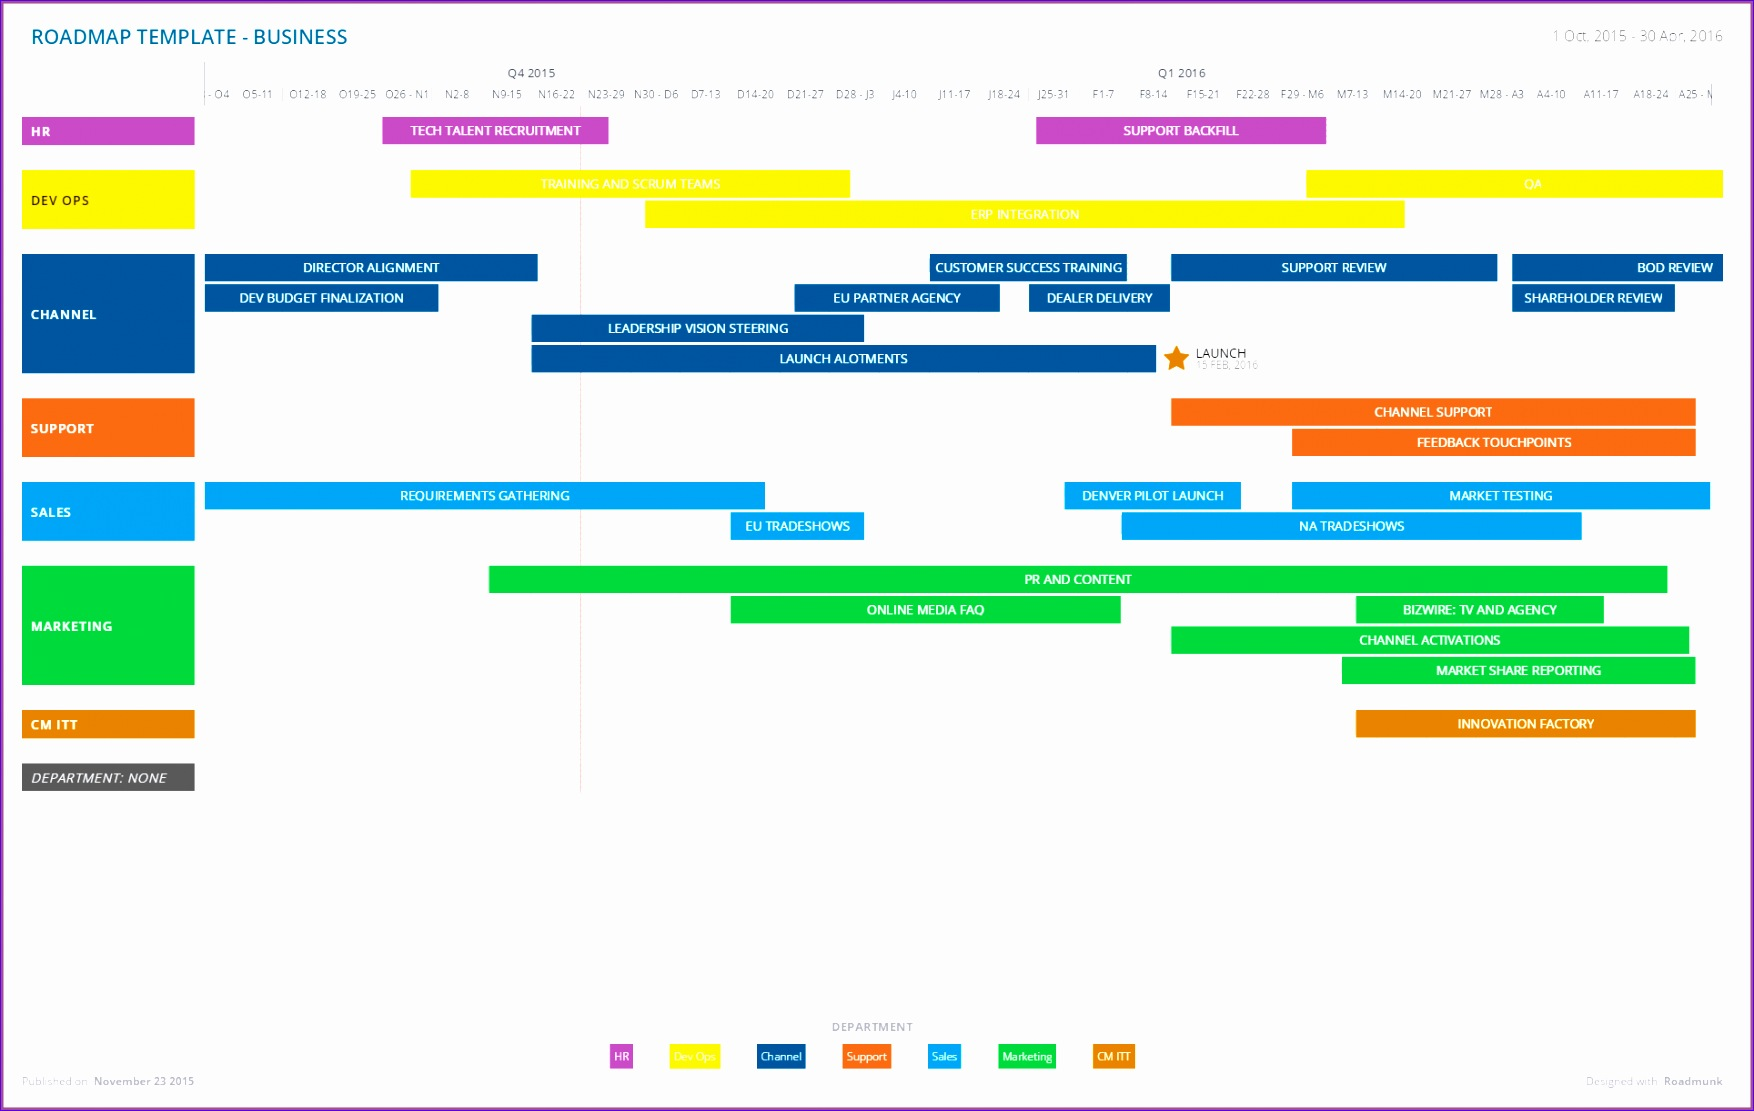 Roadmap Template Excel ExcelTemplates ExcelTemplates - Roadmap template excel